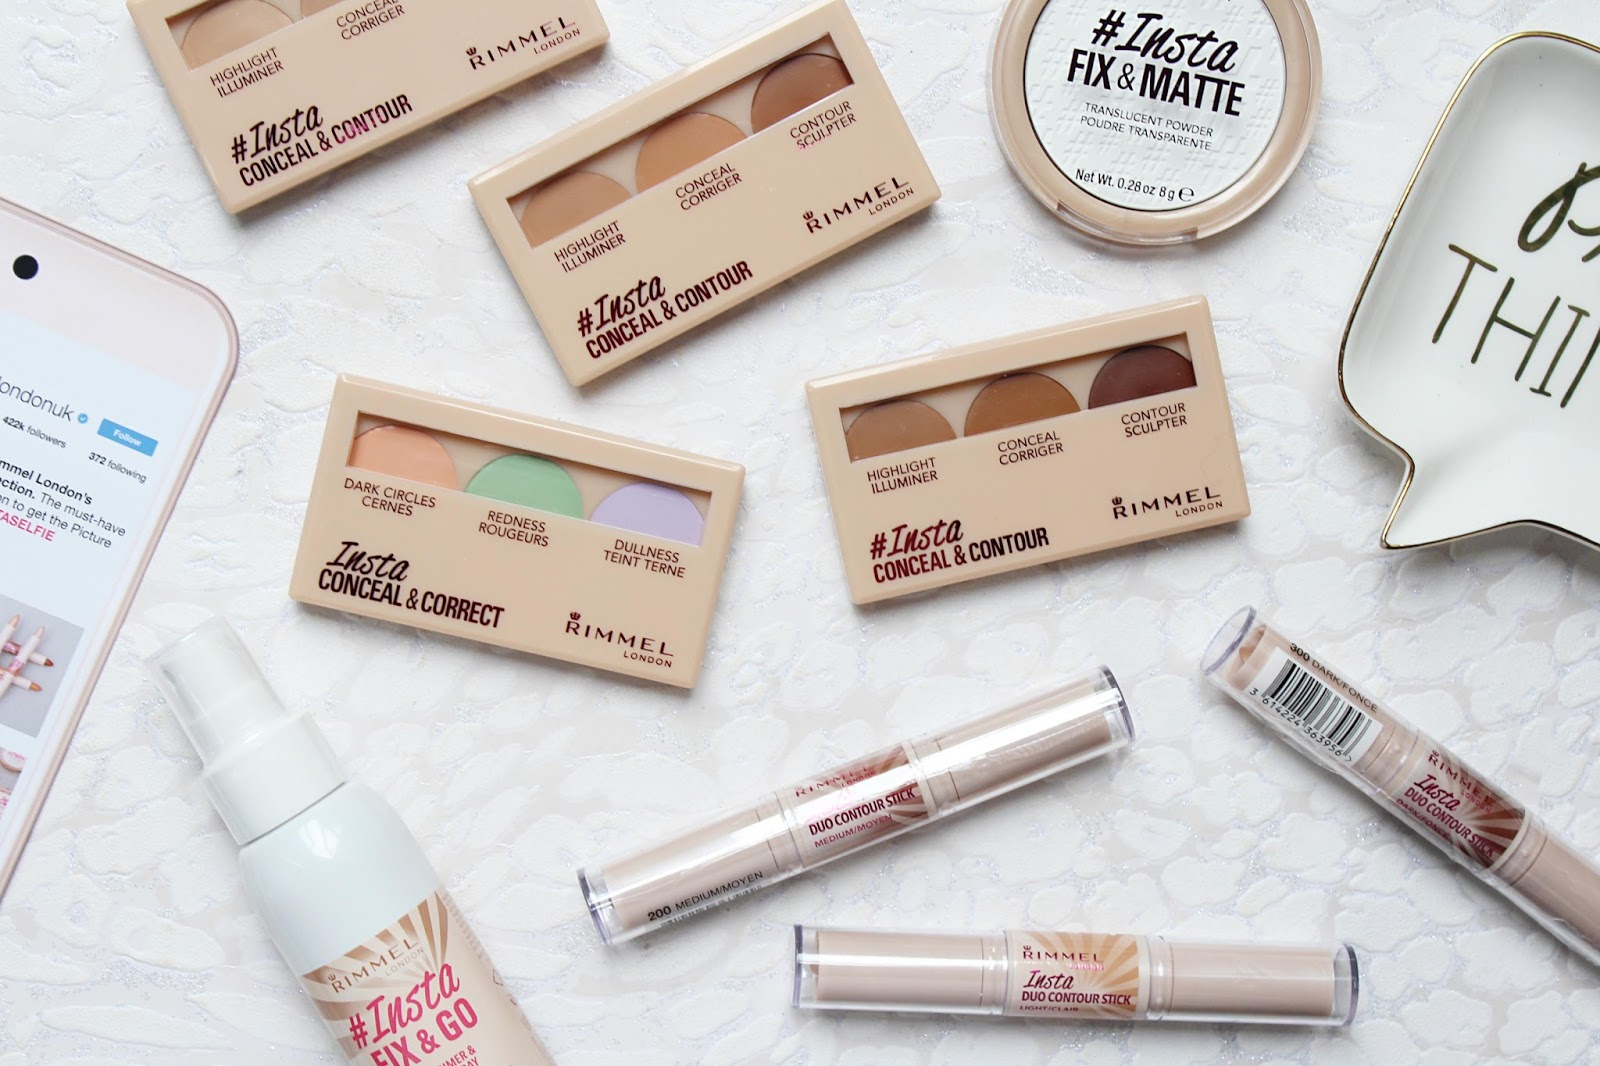 Rimmel London #Insta Collection